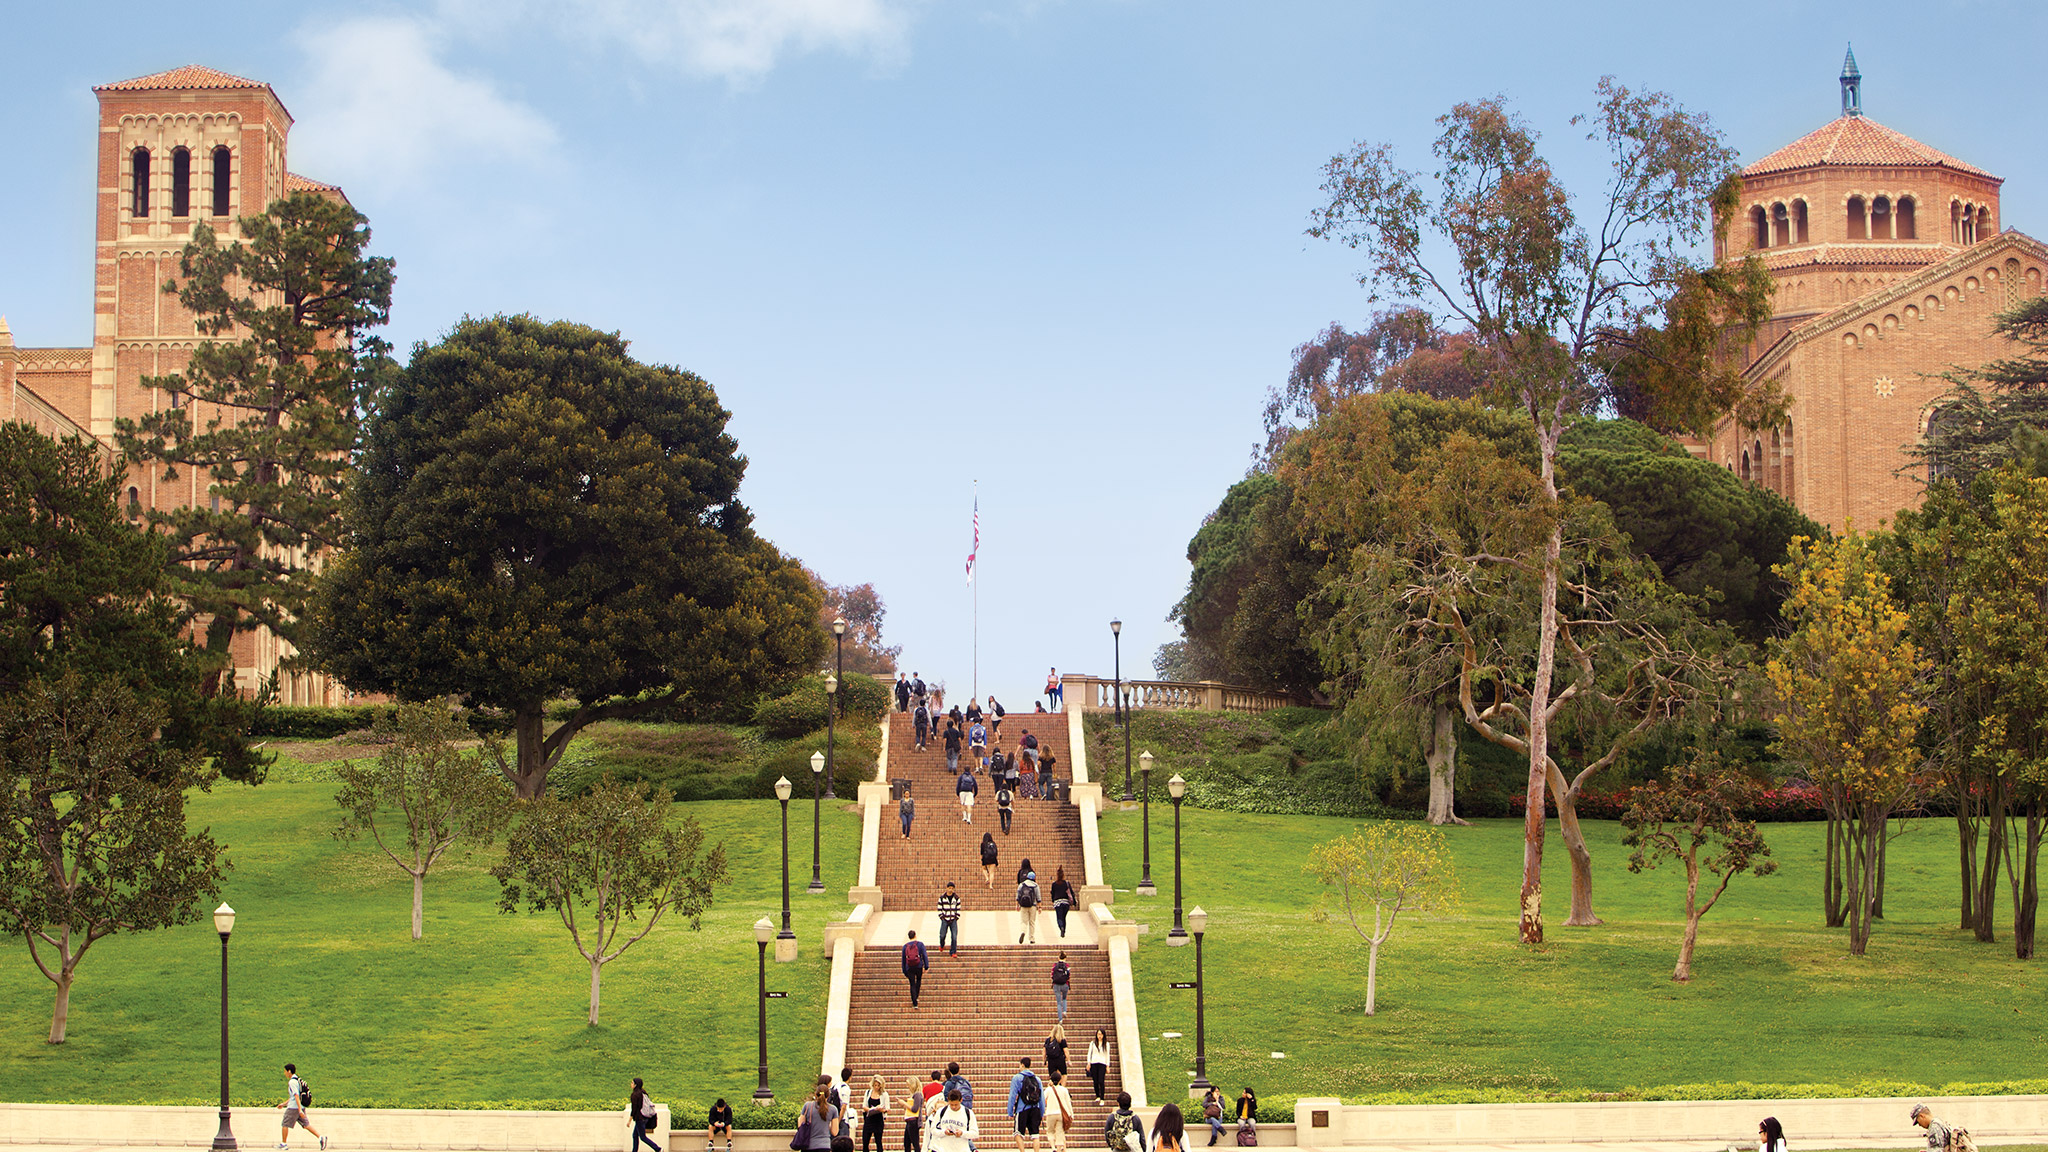 Students make their way up Janss Steps, which served as the original entrance to UCLA.